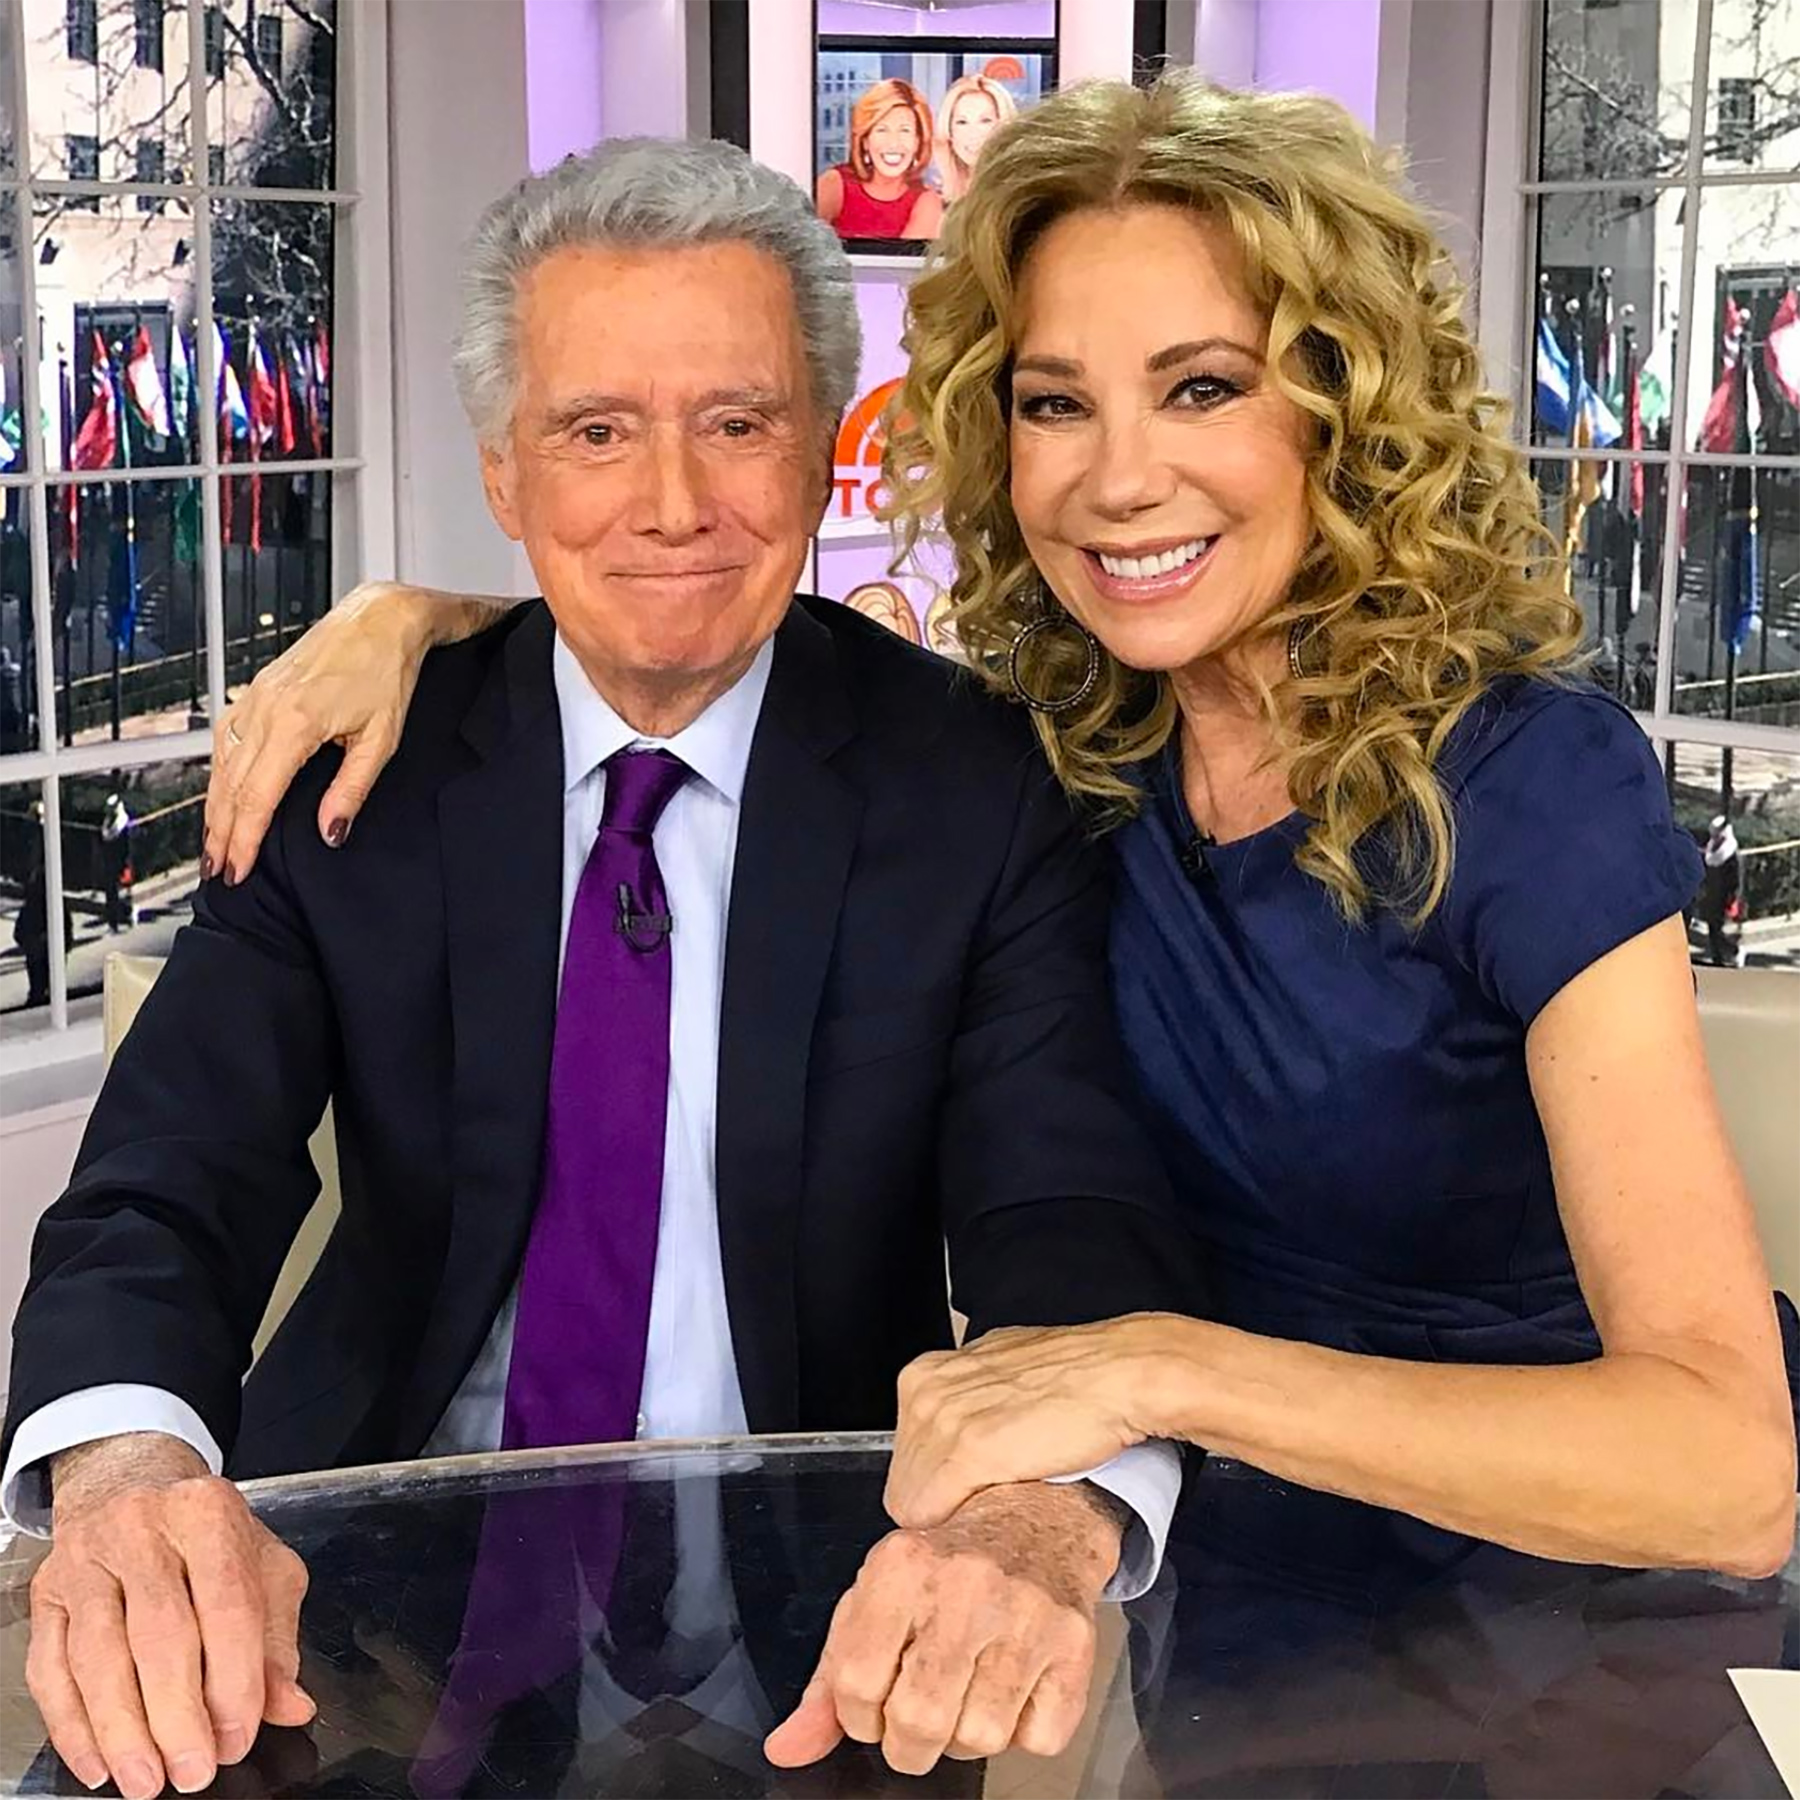 Regis Philbin and Kathie Lee